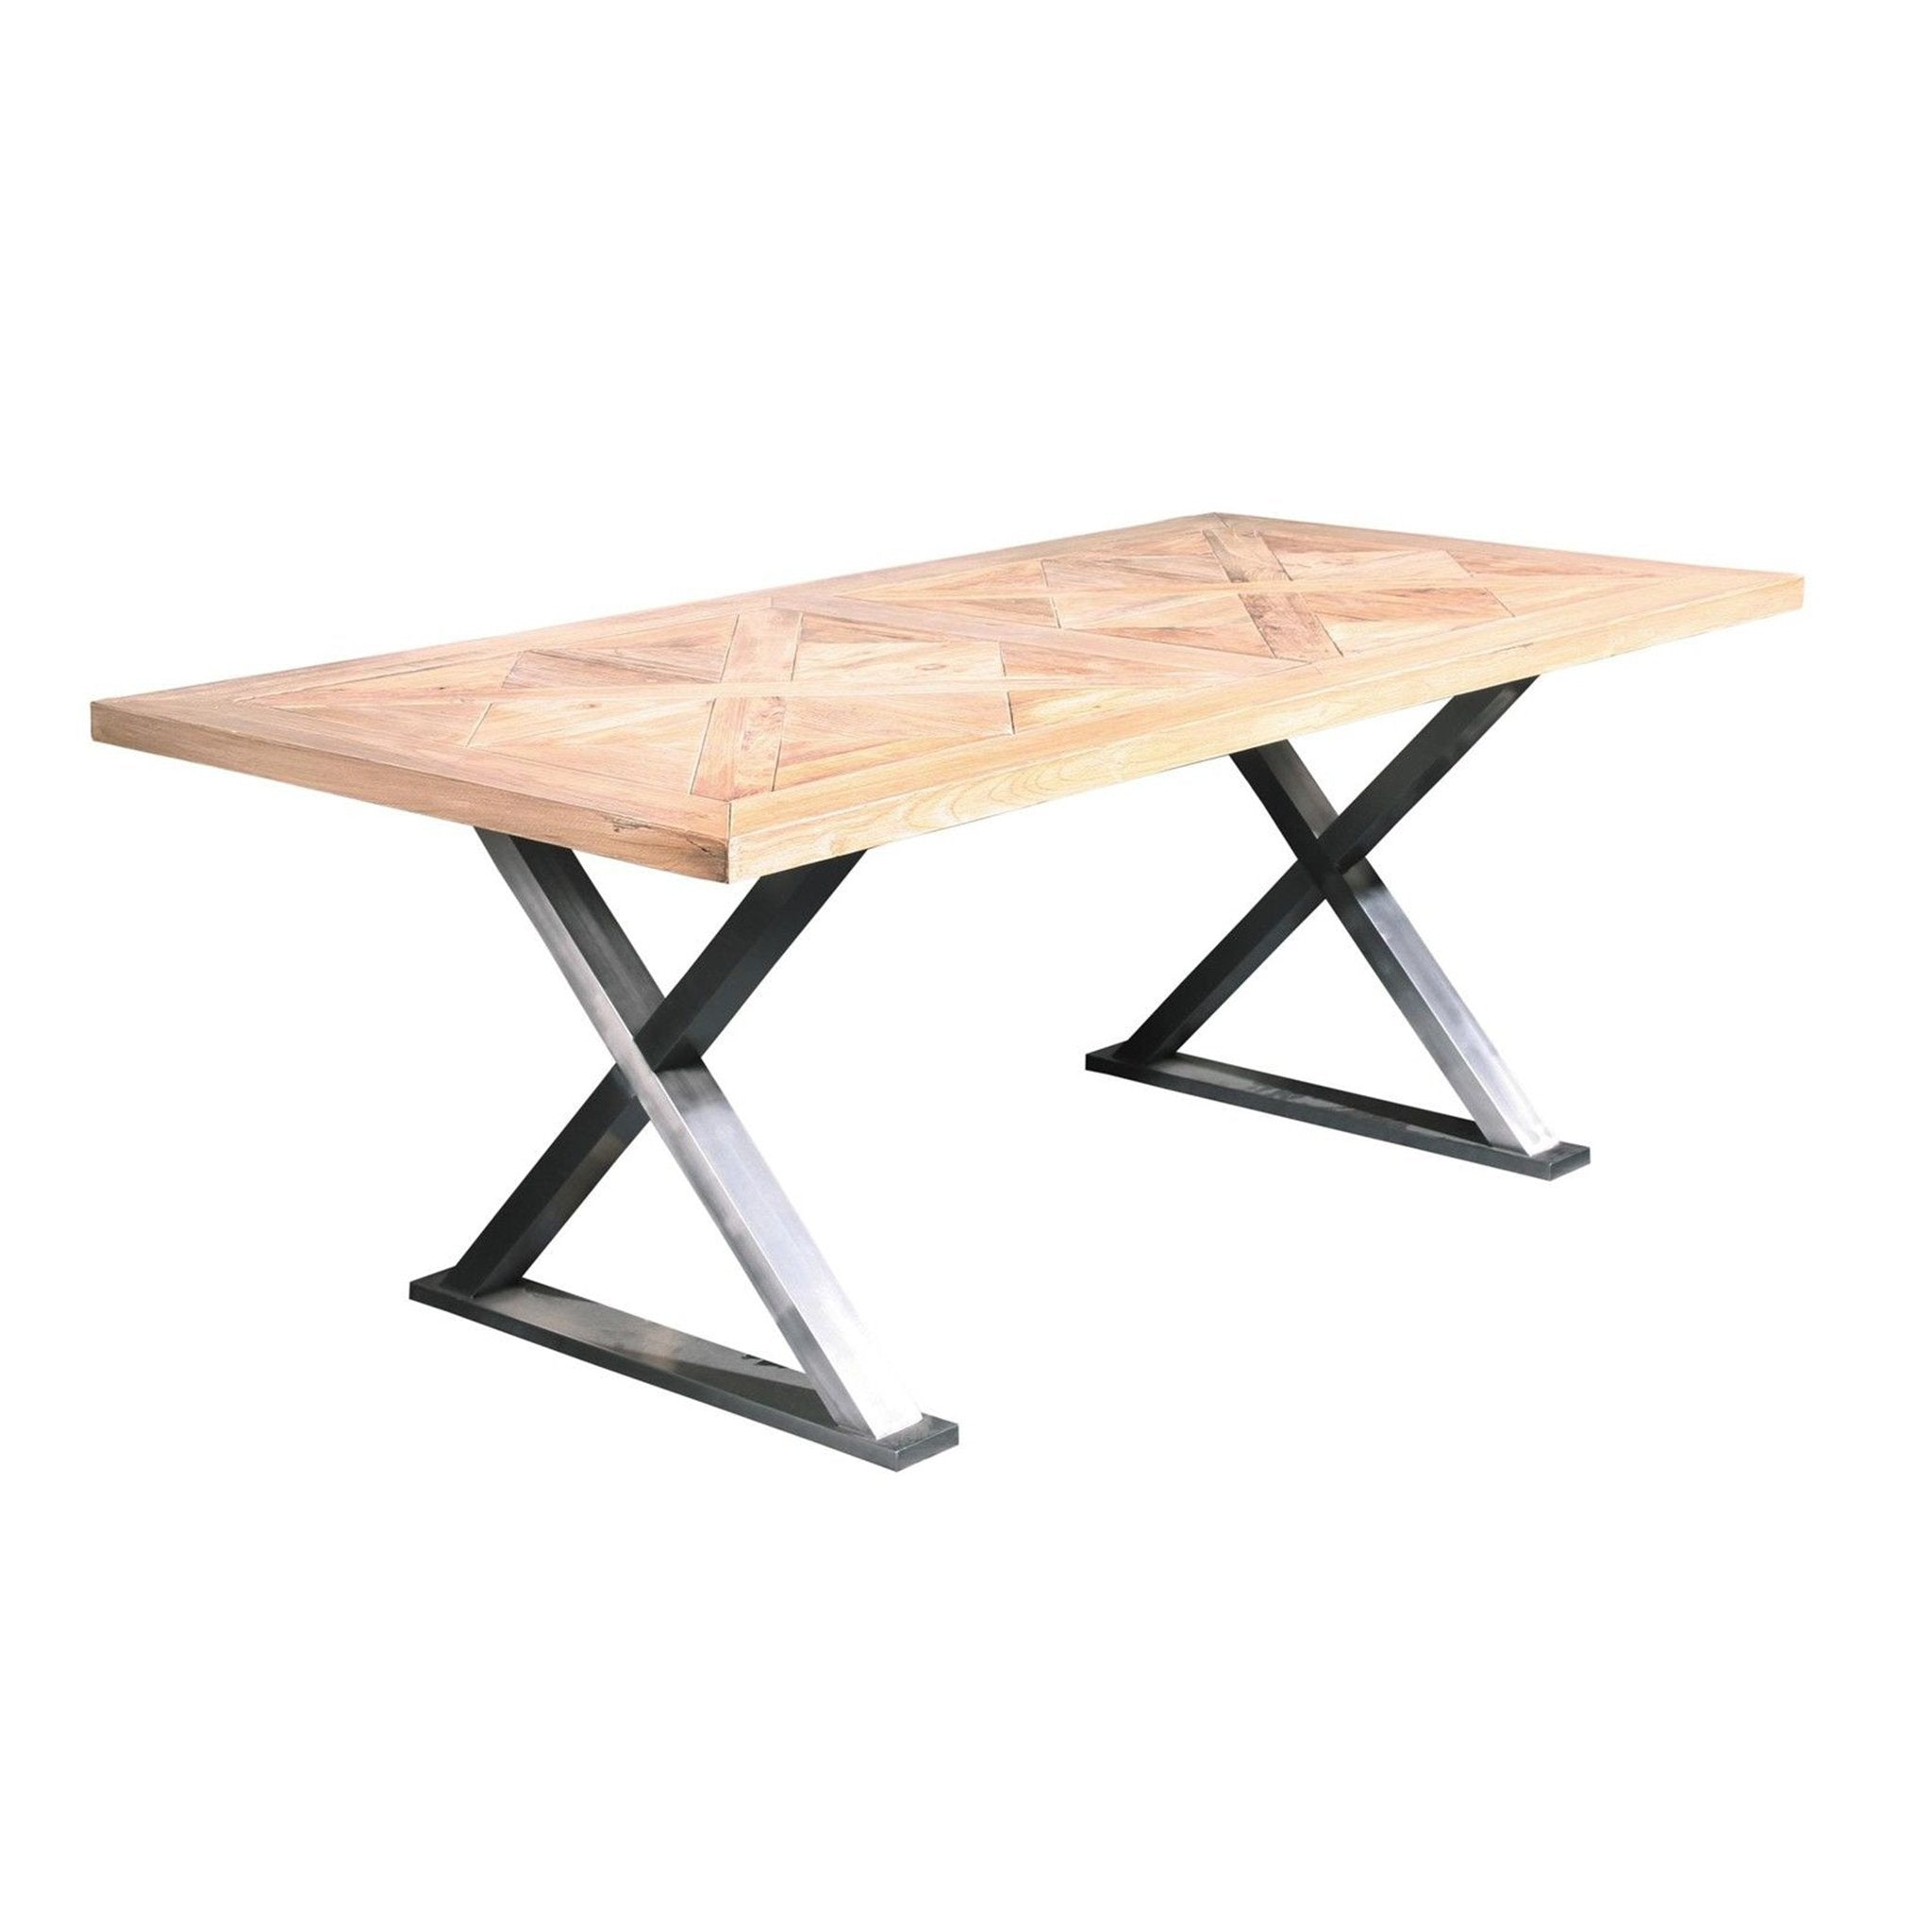 Reclaimed Elm Stainless Cross Base Restoration Contemporary Wood Dining Table - Furniture on Main